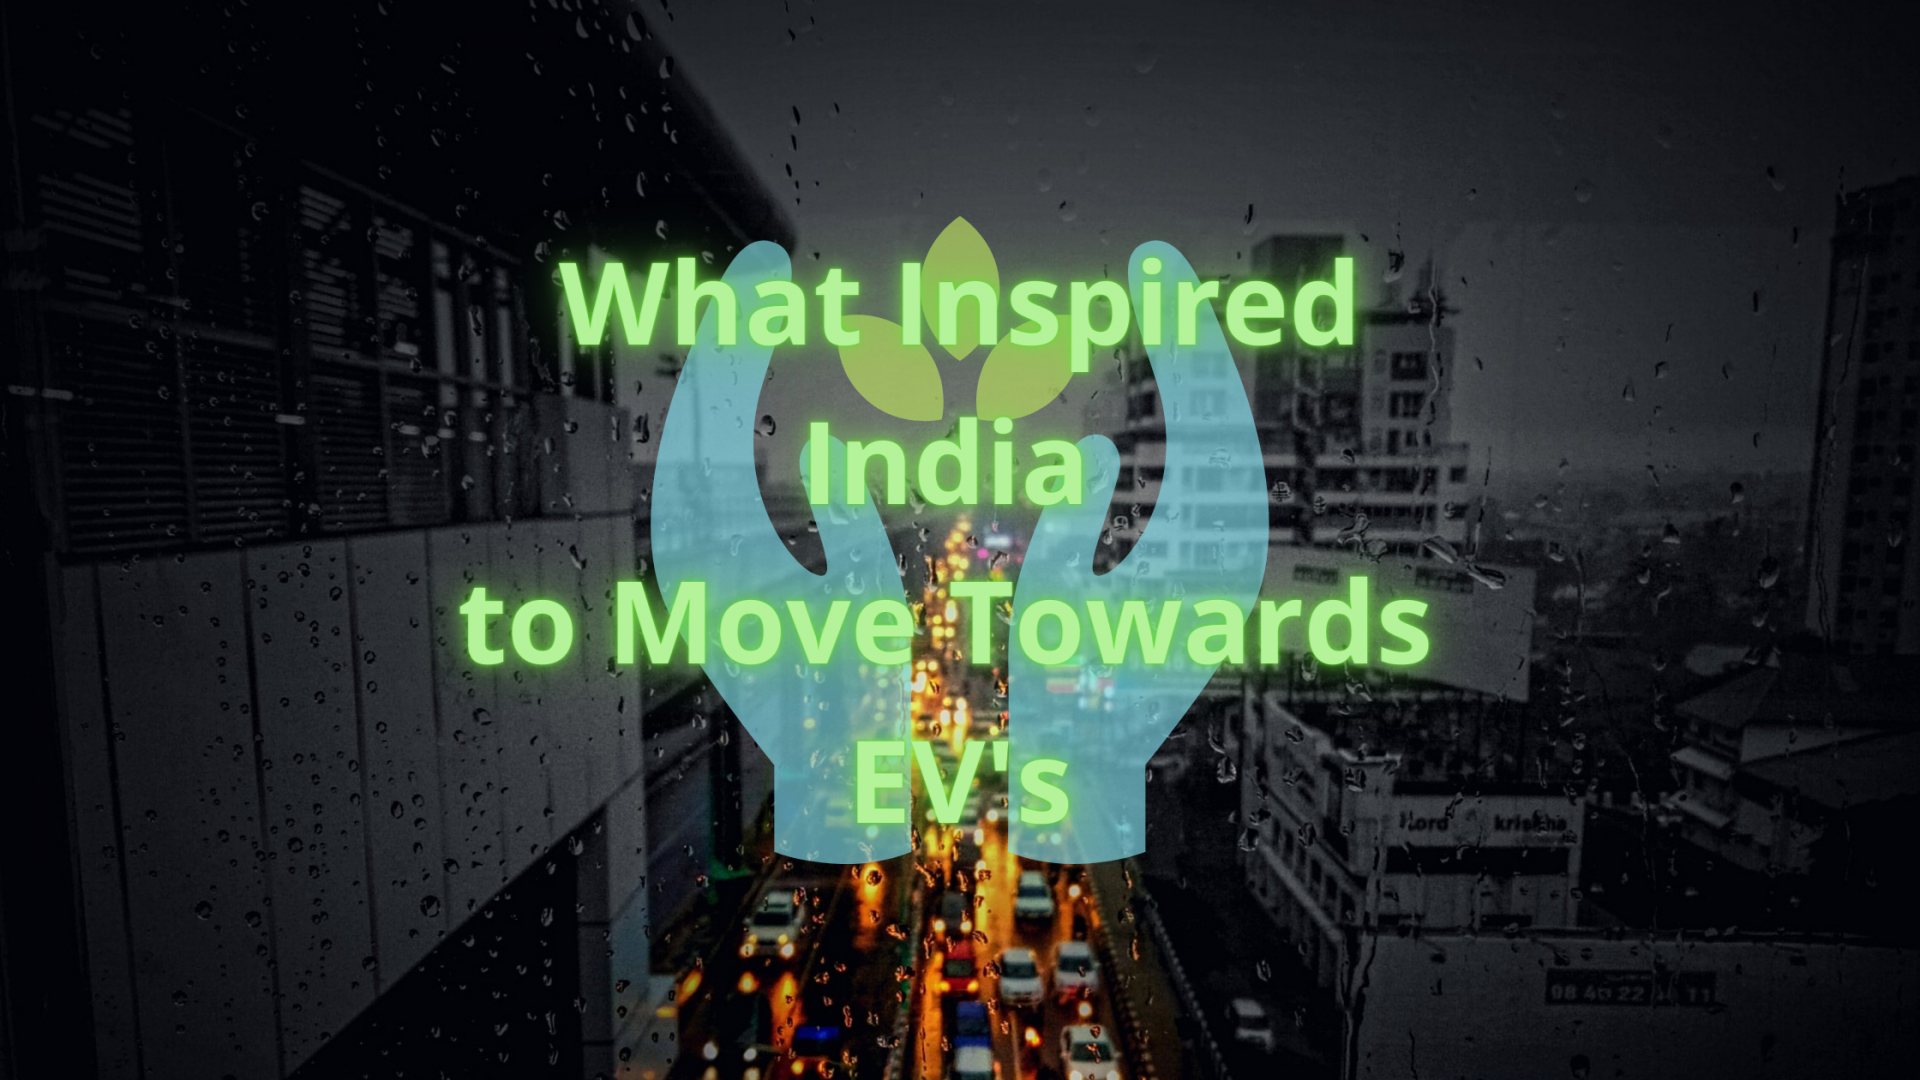 What Inspired India to move towards EVs